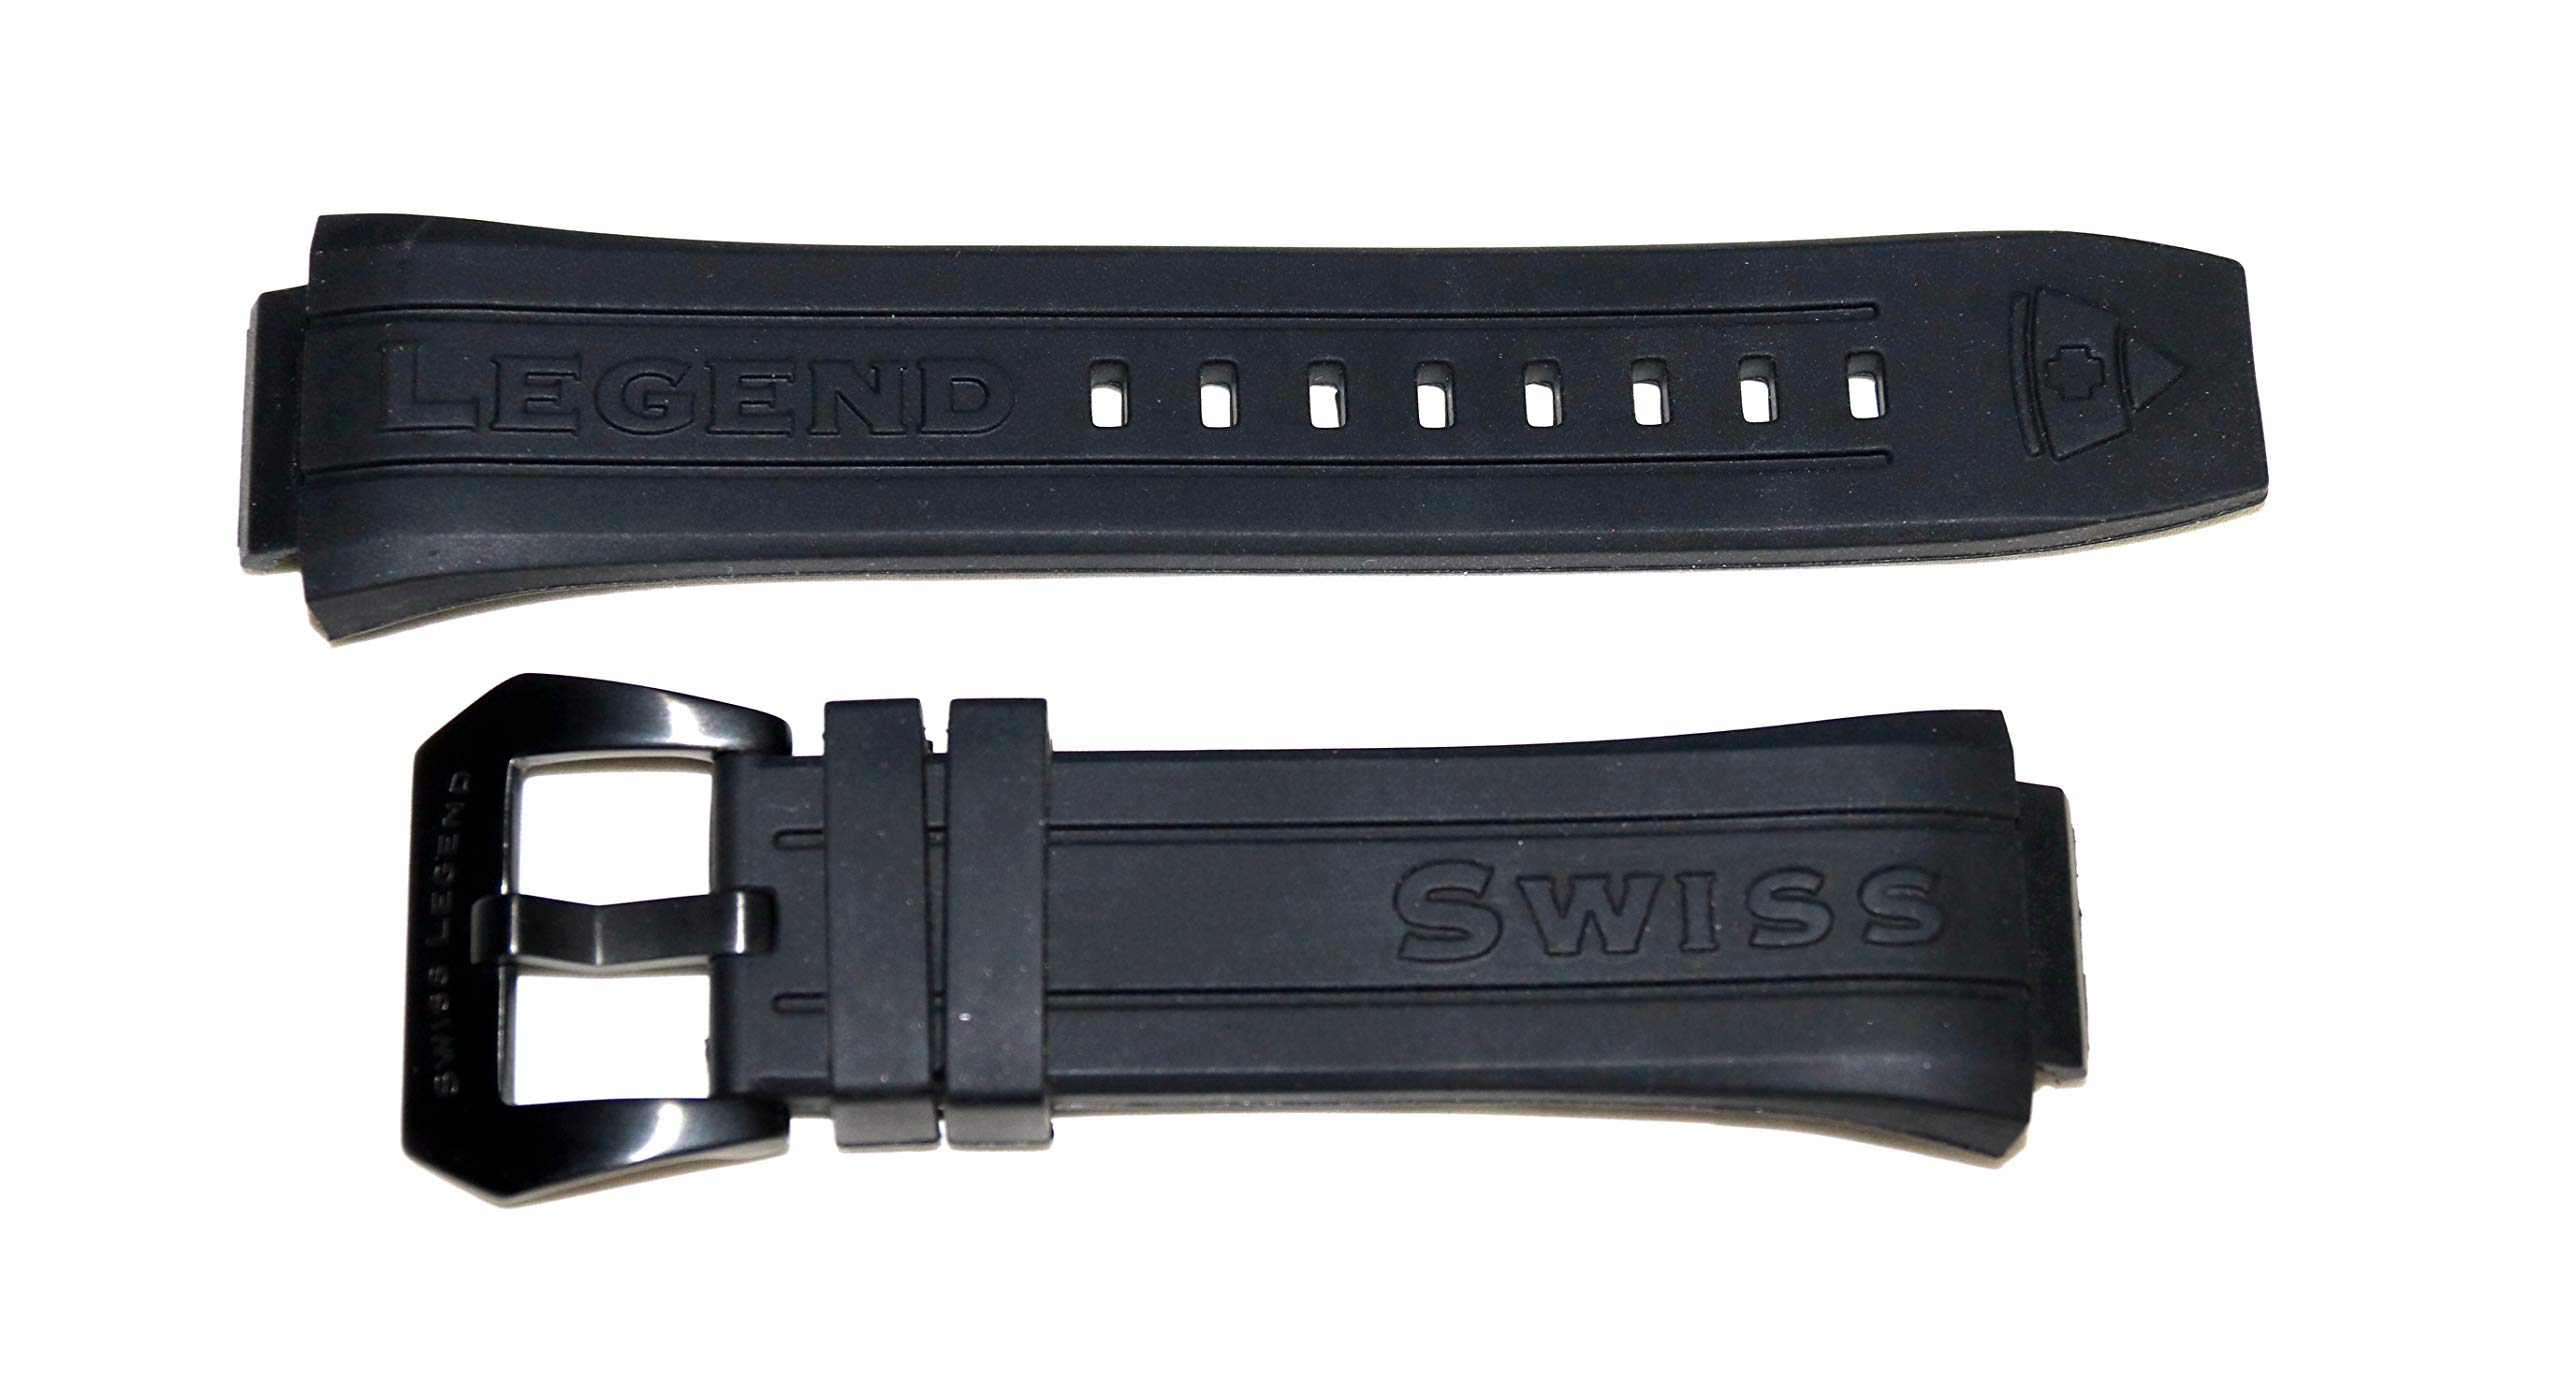 Swiss Legend 28MM Black Silicone Watch Strap Black Stainless Buckle fits 44mm Trimix Diver Watch by SWISS LEGEND (Image #2)